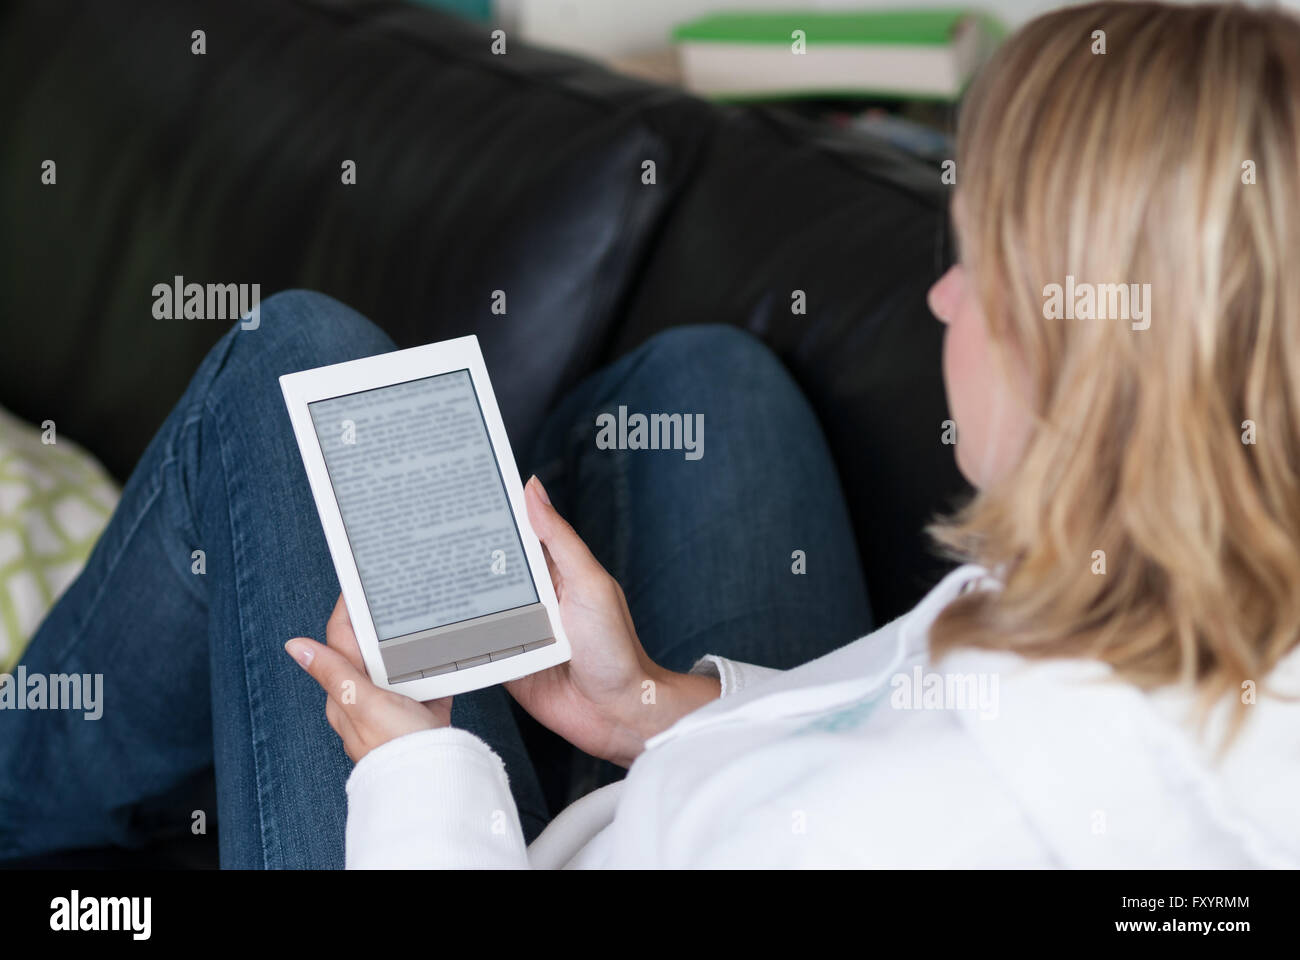 Woman sits on the couch in her free time and reads an ebook. Focus is at the ebook reader. - Stock Image